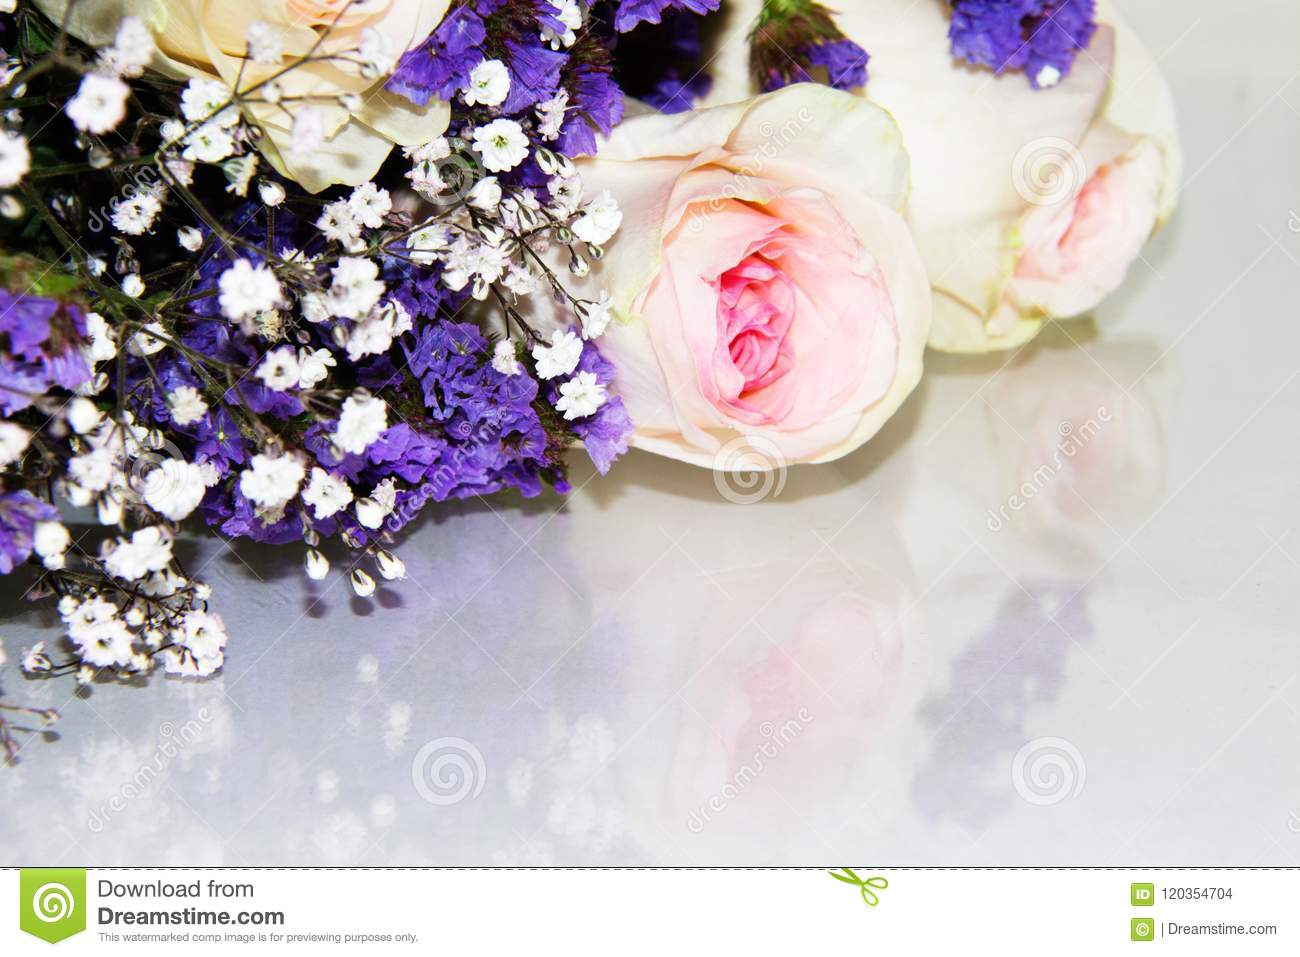 Small Purple Flowers Mixed In With White Baby S Breath And Pink Roses In A Bouquet Stock Photo Image Of Gift Anniversary 120354704